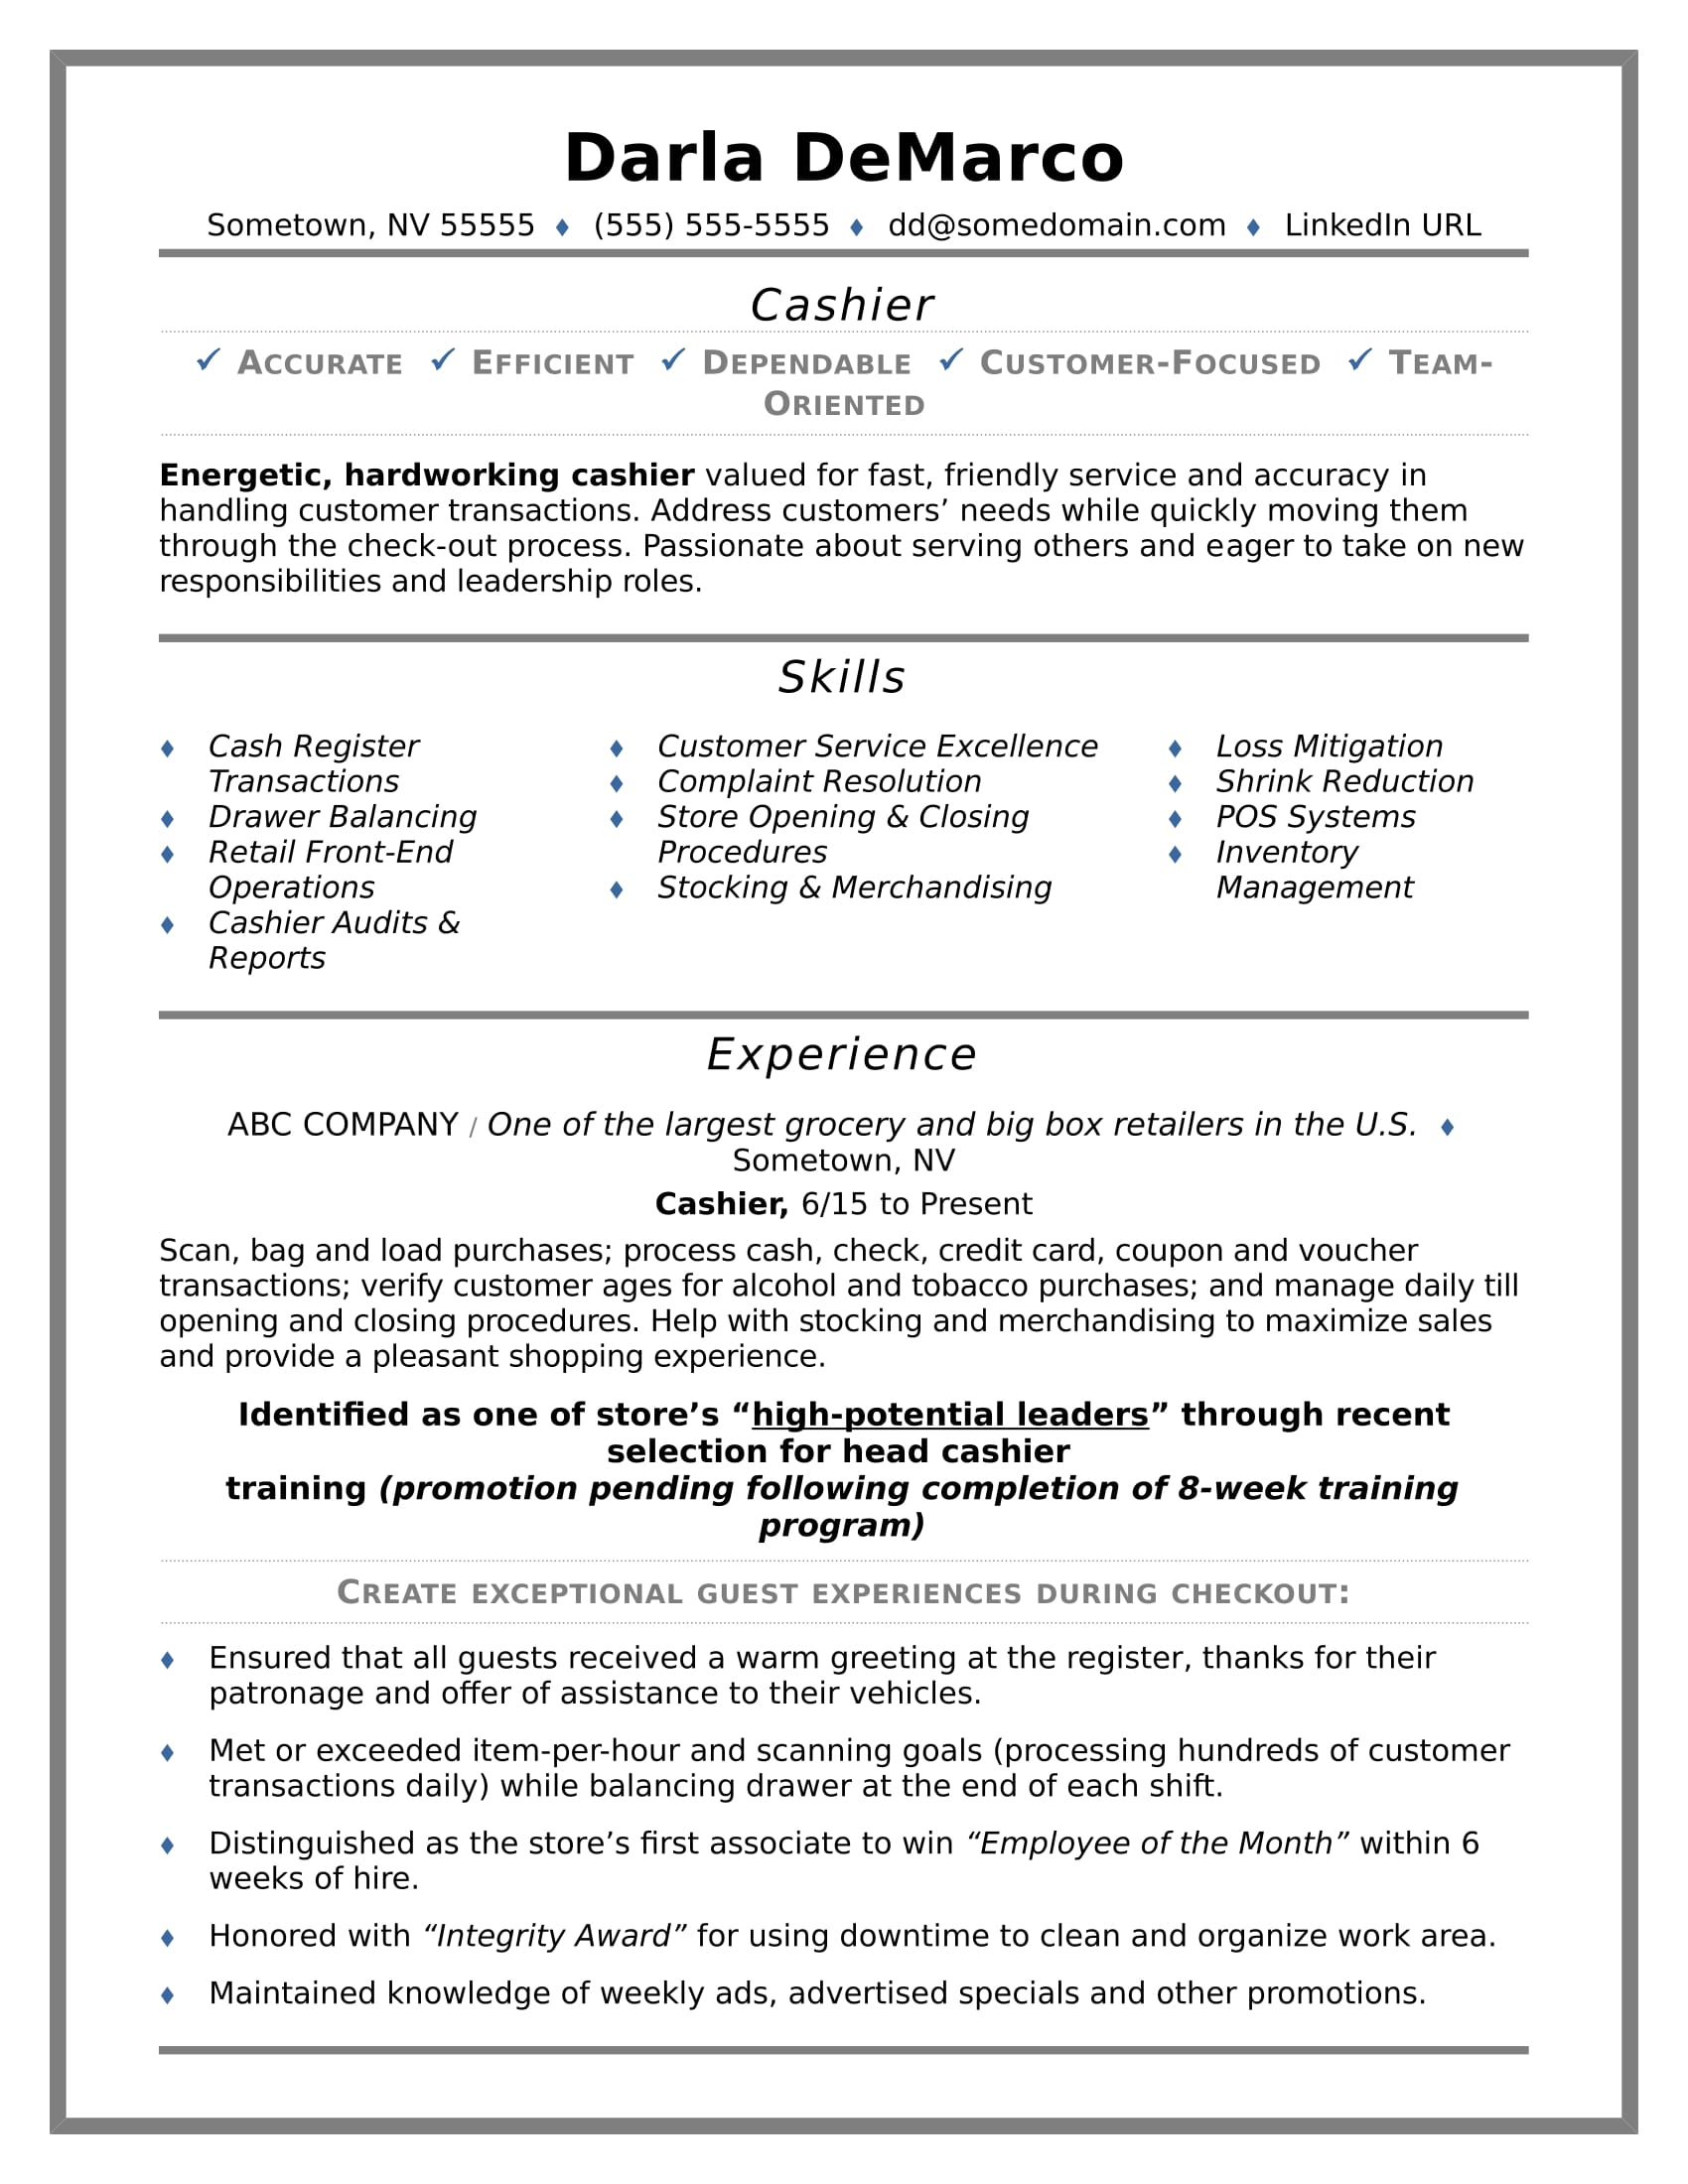 cashier resume sample - Resume Samples